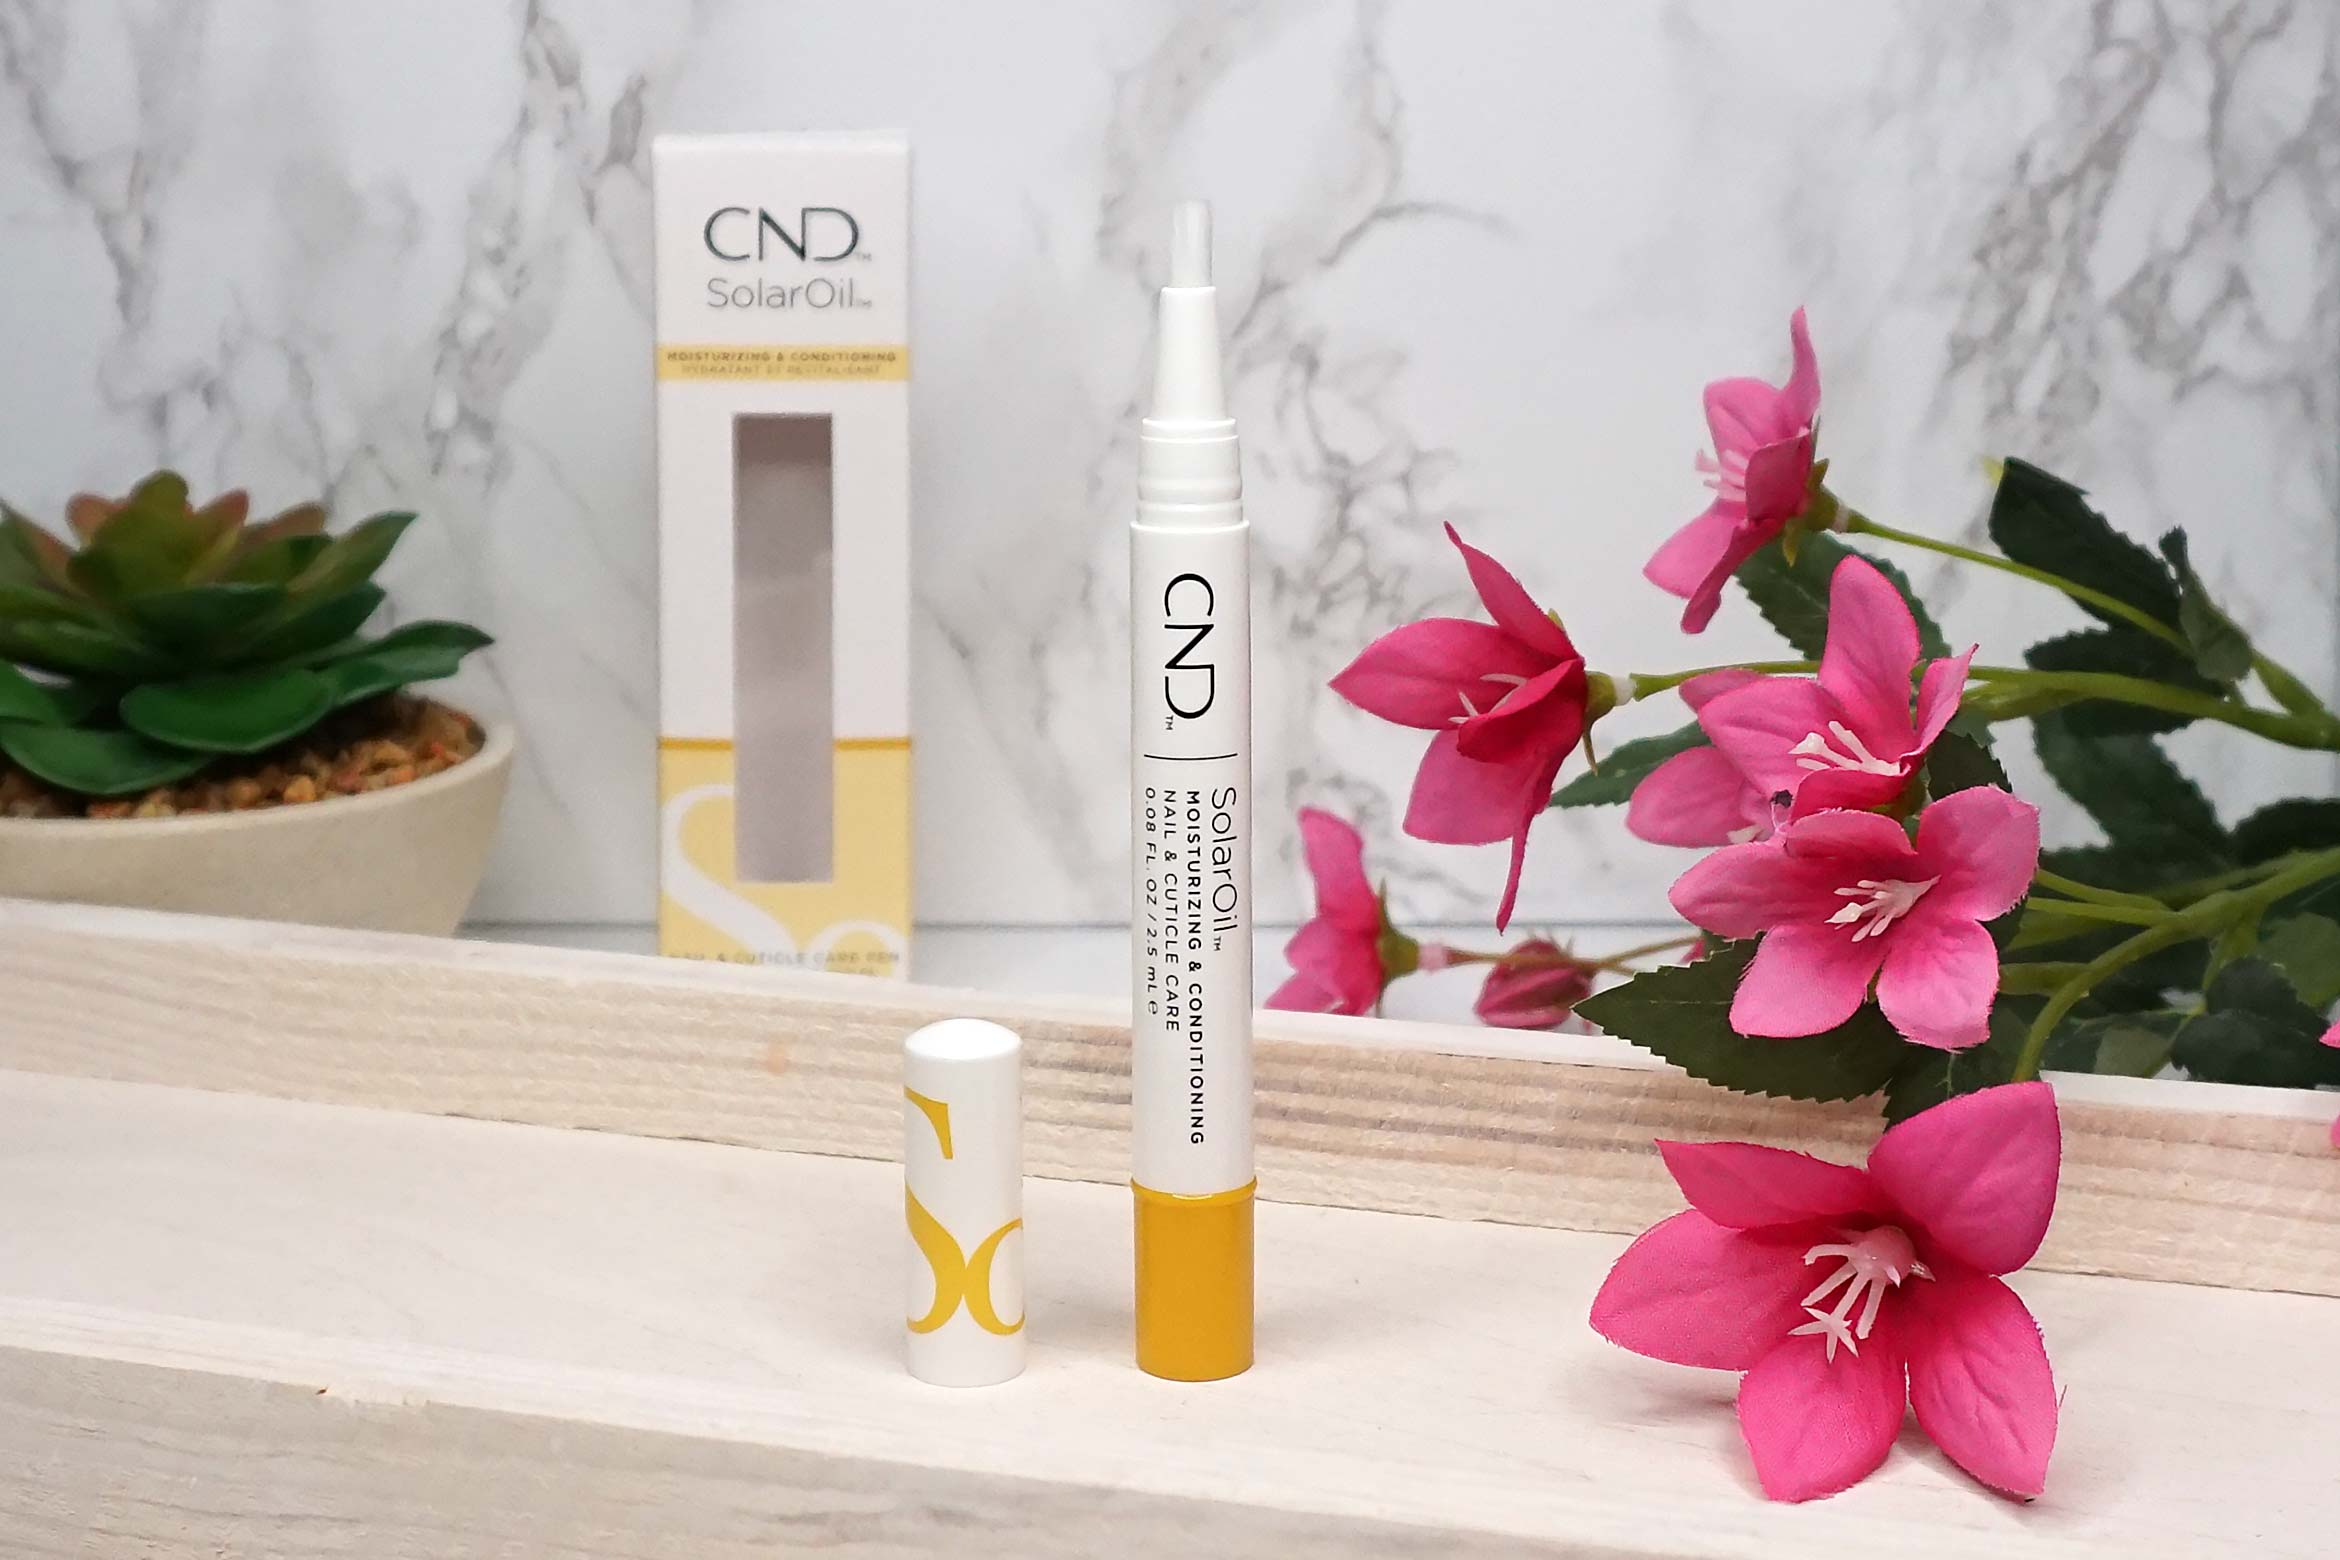 CND-solaroil-Nail-Cuticle-Care-Pen-review-1